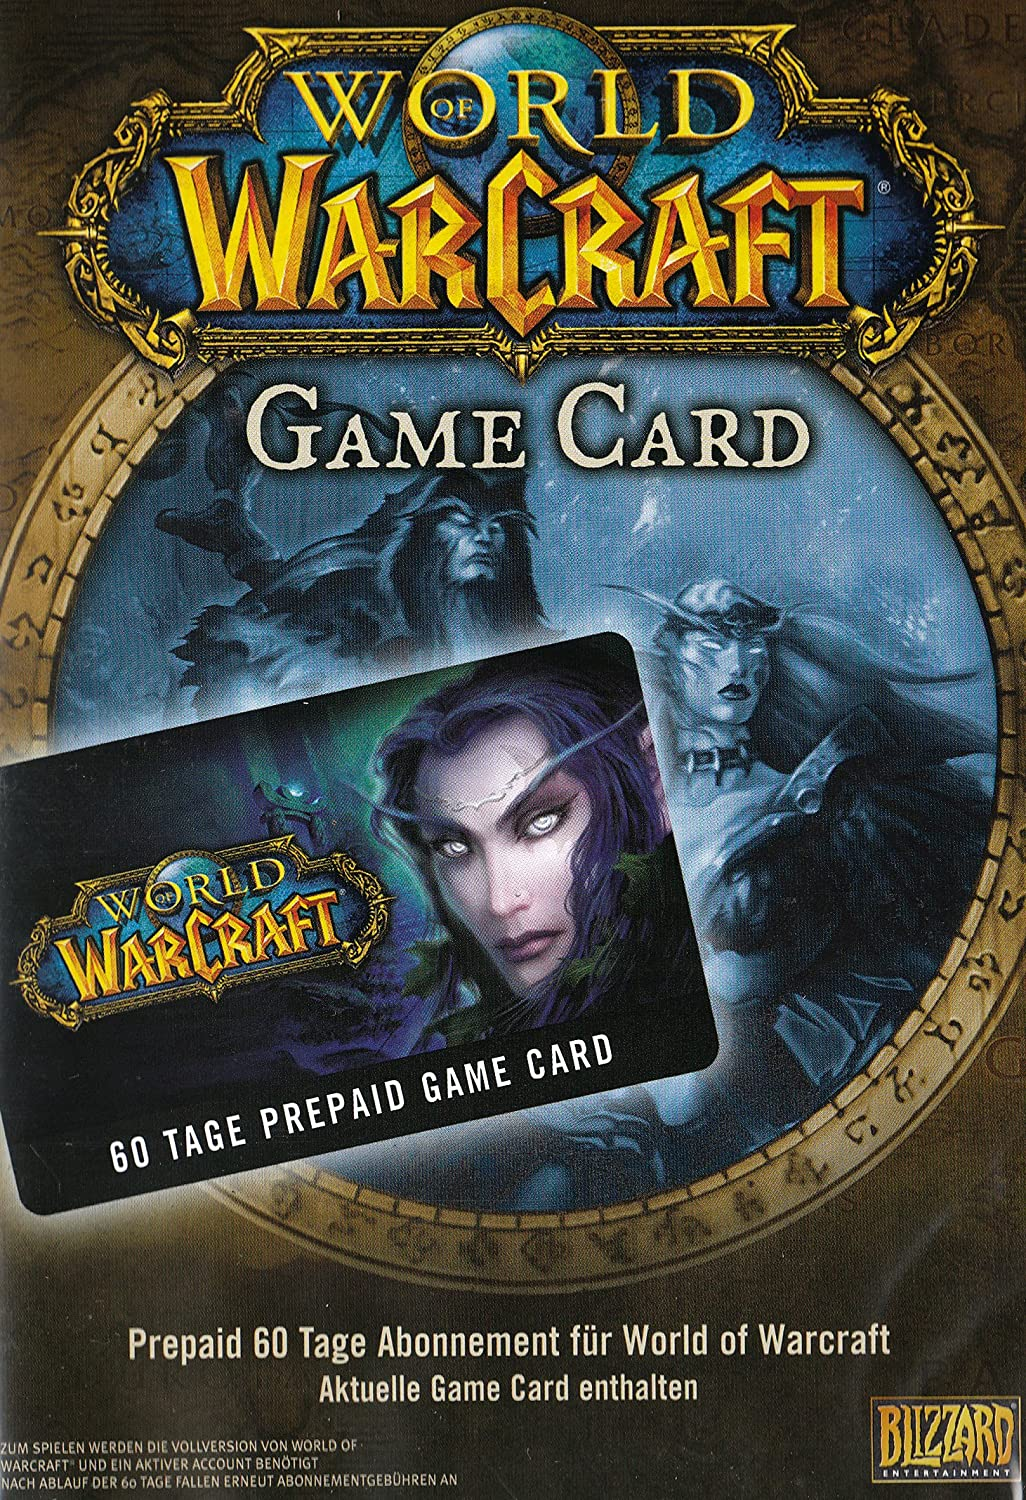 World of Warcraft WoW Gamecard 60 Tage